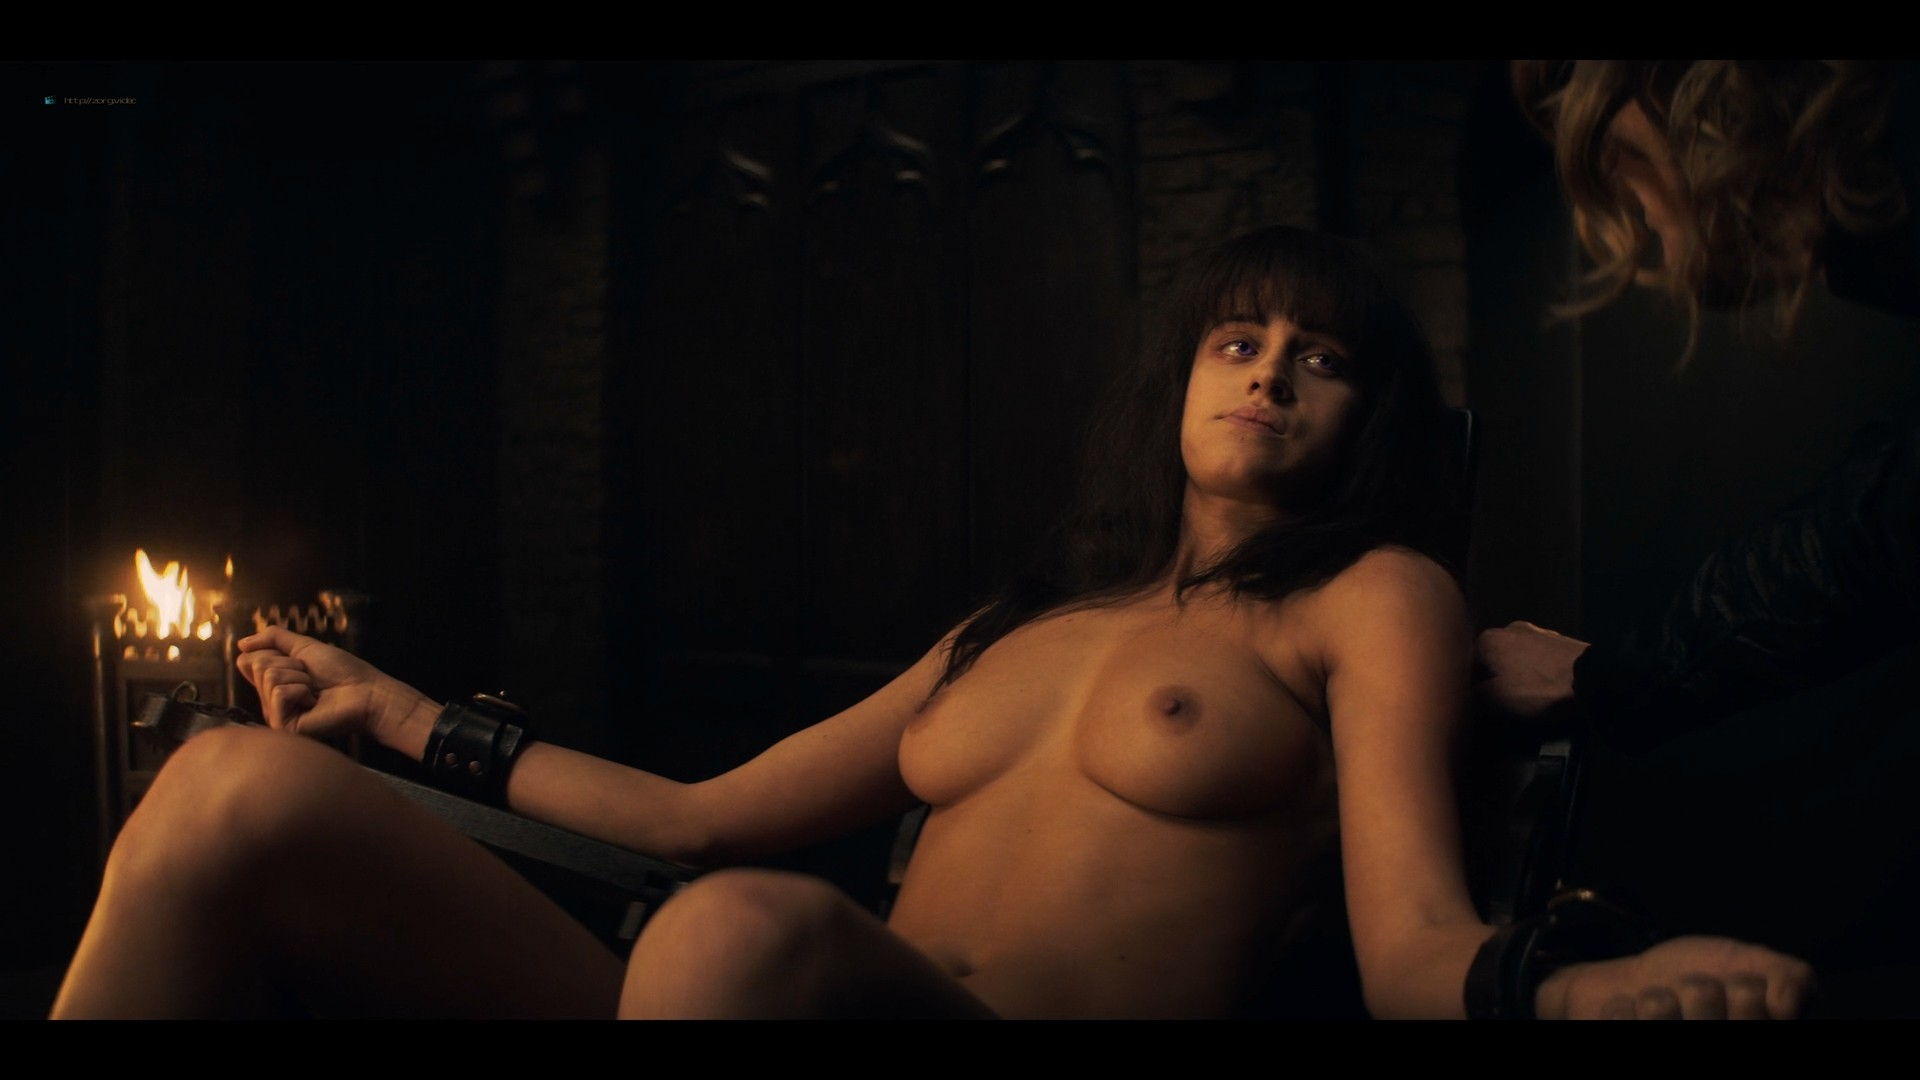 Anya Chalotra nude sex others nude too - The Witcher (2019) s1e1-3 HD 1080p WEB-DL (8)